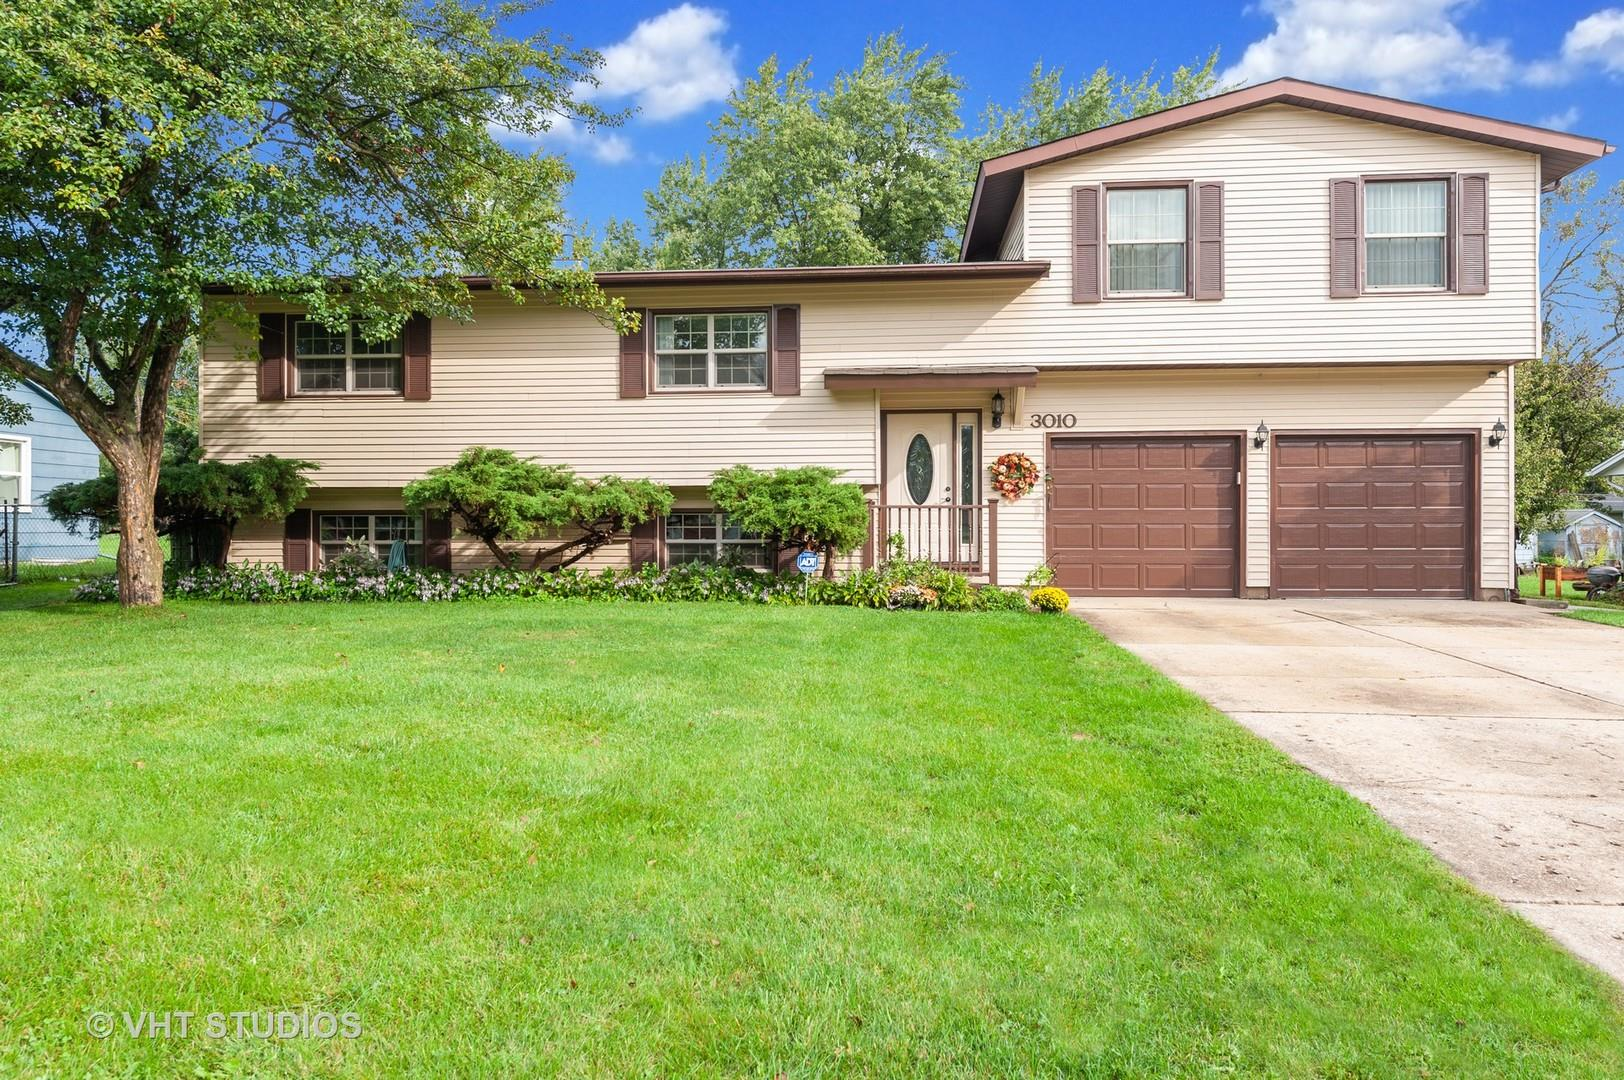 3010 Highland Drive, Cary, IL 60013 - #: 10675848